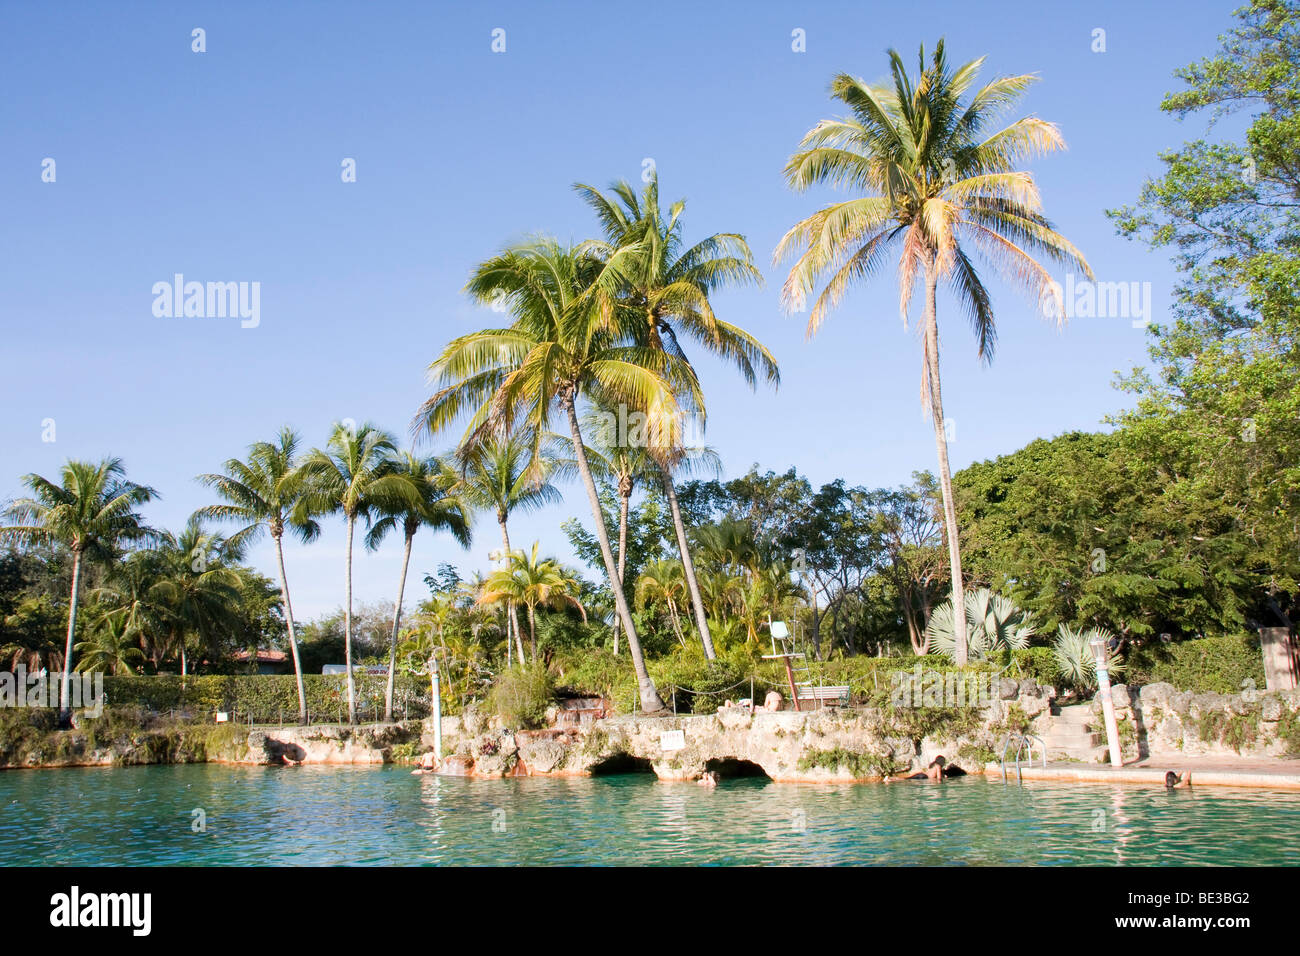 Swimming pool, Venetian Pools in Coral Gables, Miami, Florida, USA - Stock Image